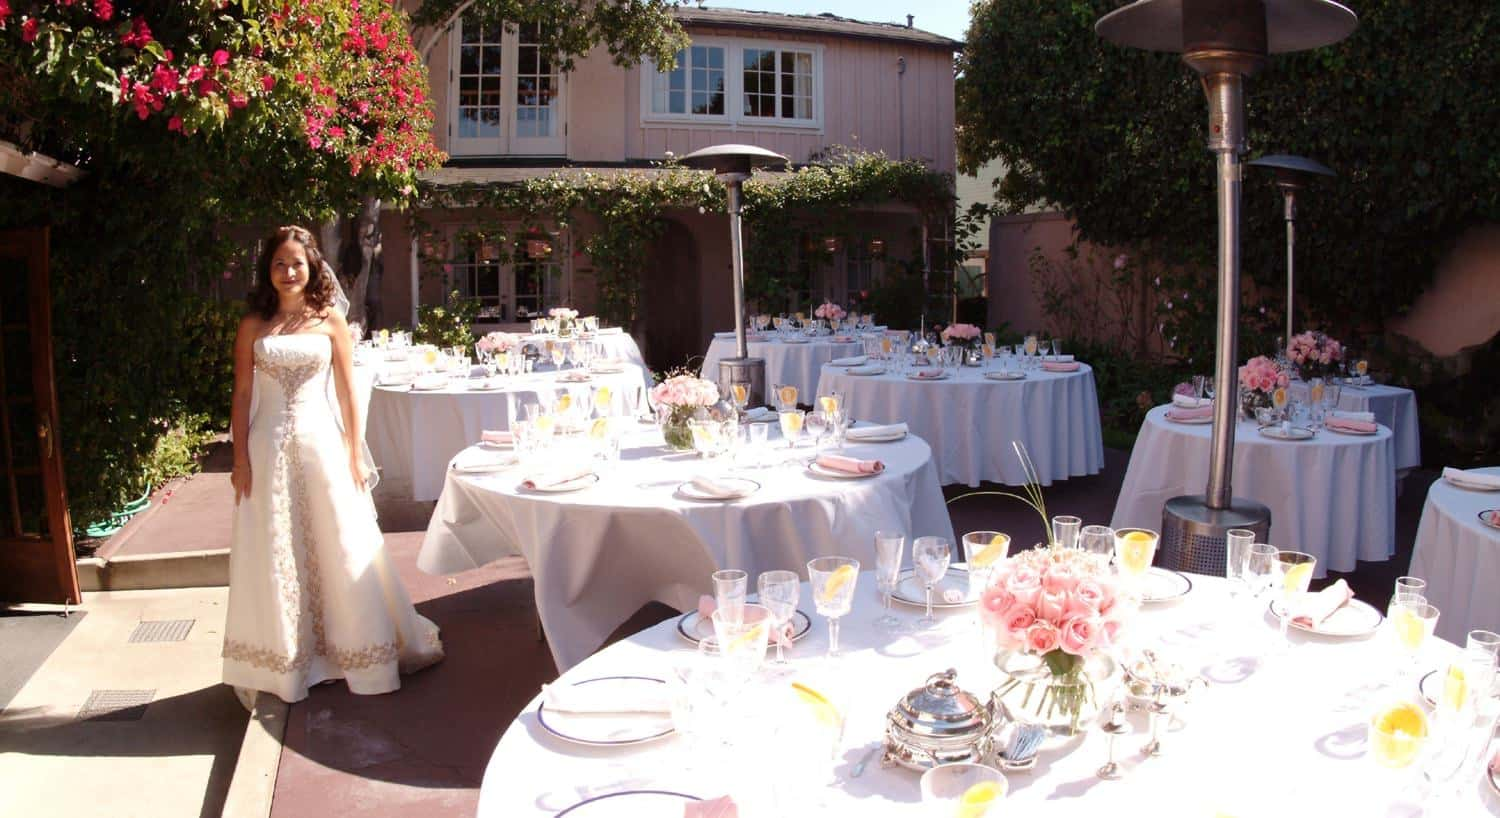 A bride standing by white round tables outside set for a wedding with pink roses